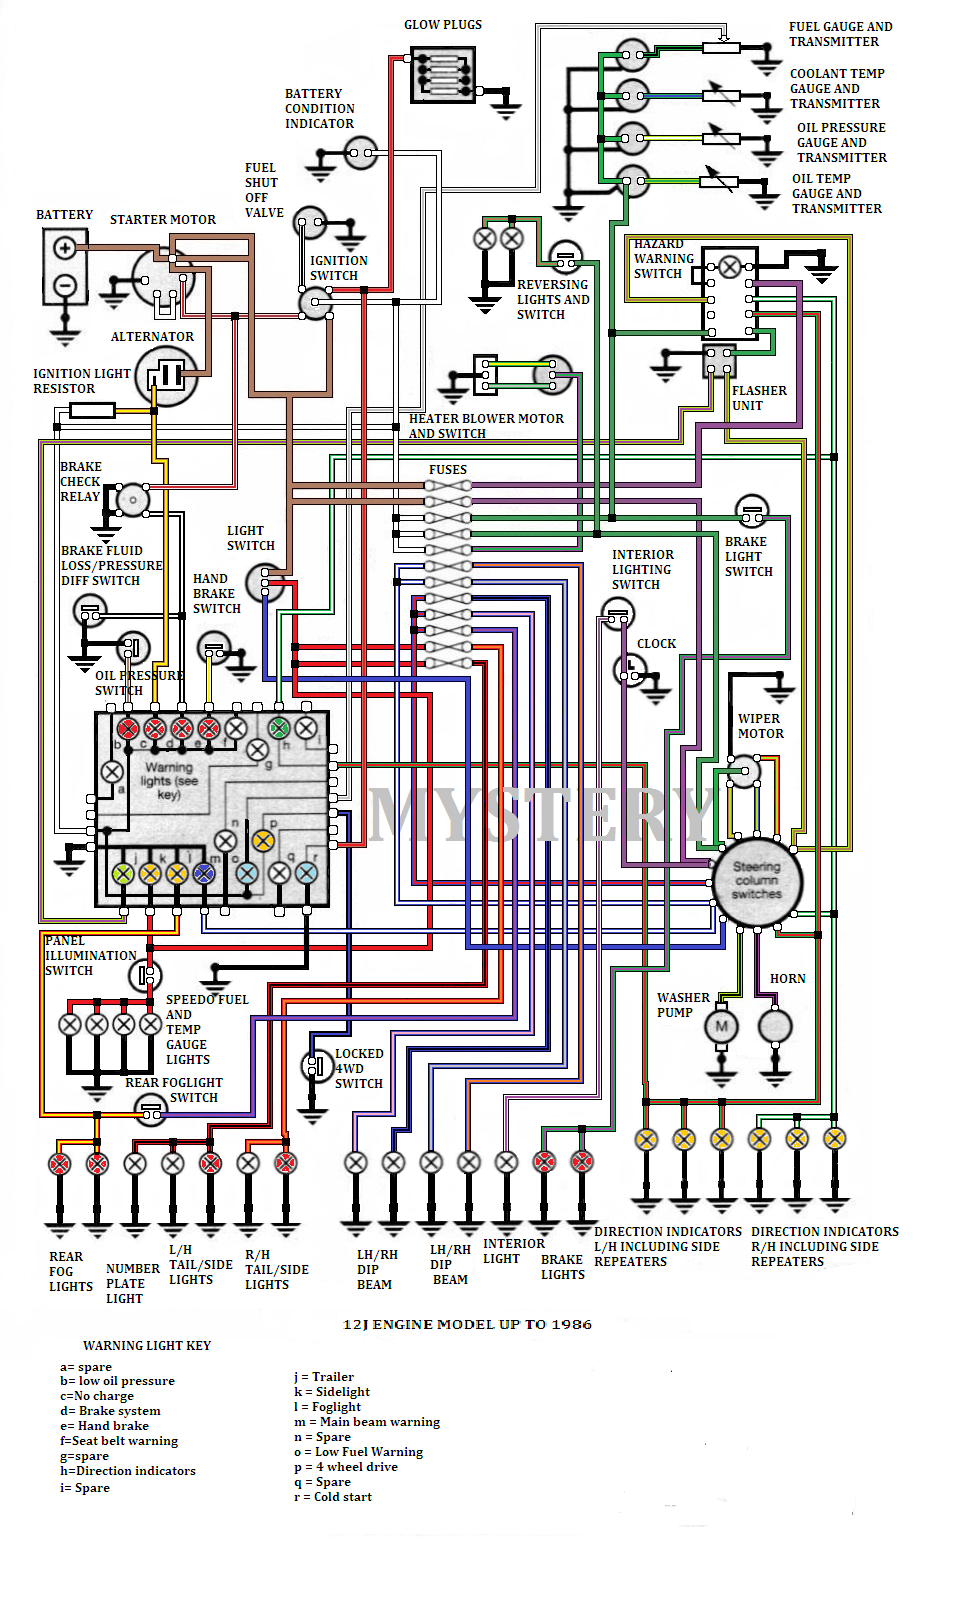 better wiring diagram 1985 110 landyzone land rover forum def86 copy1 png